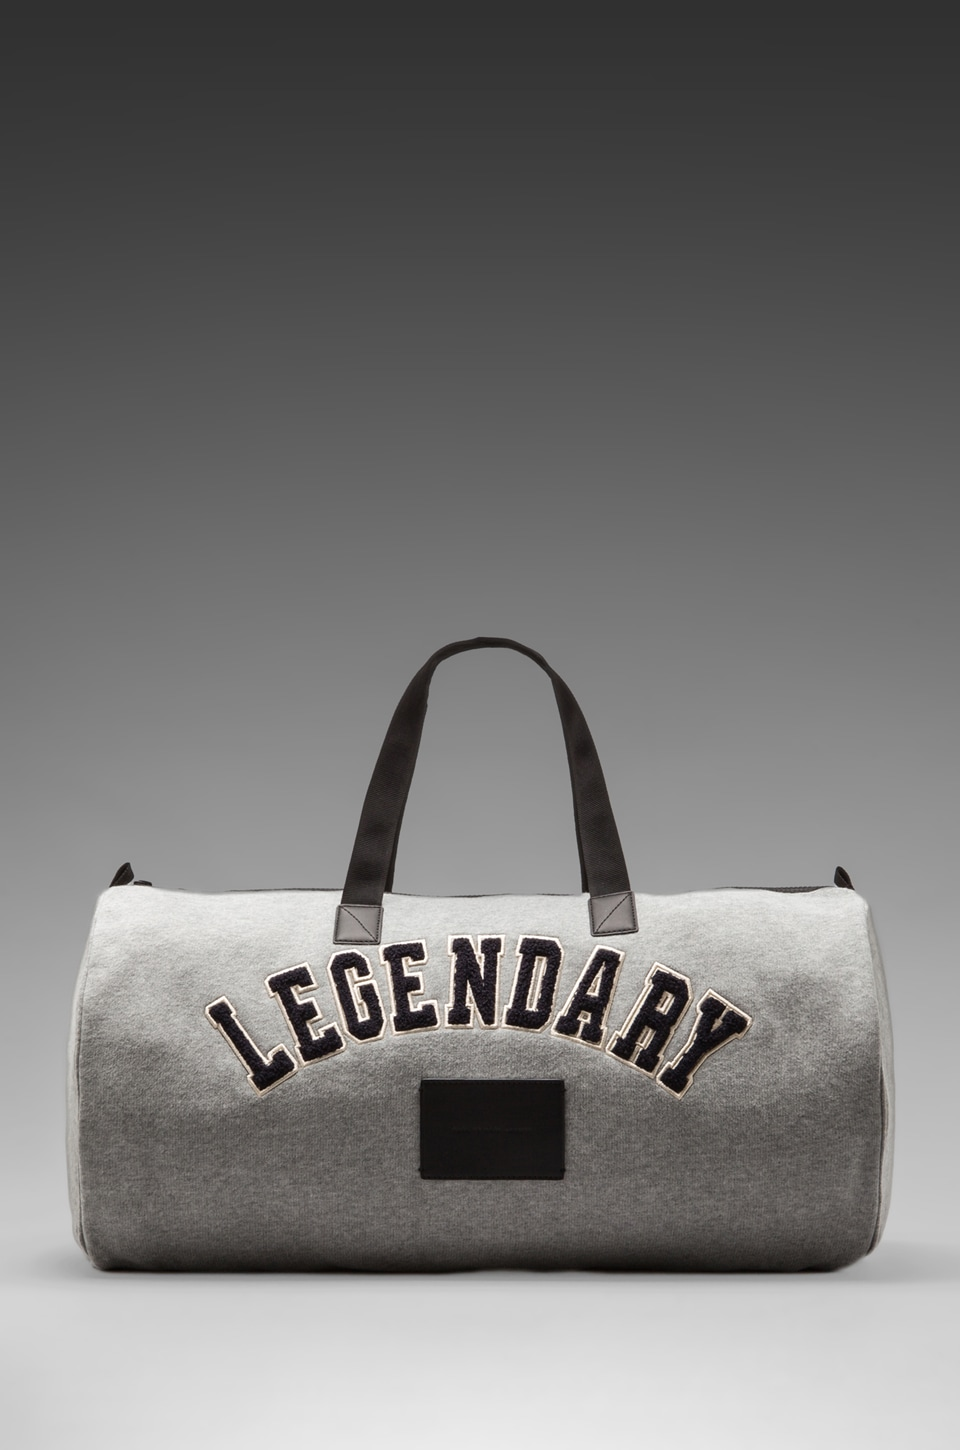 Marc by Marc Jacobs Legendary Duffle en Gris Chiné